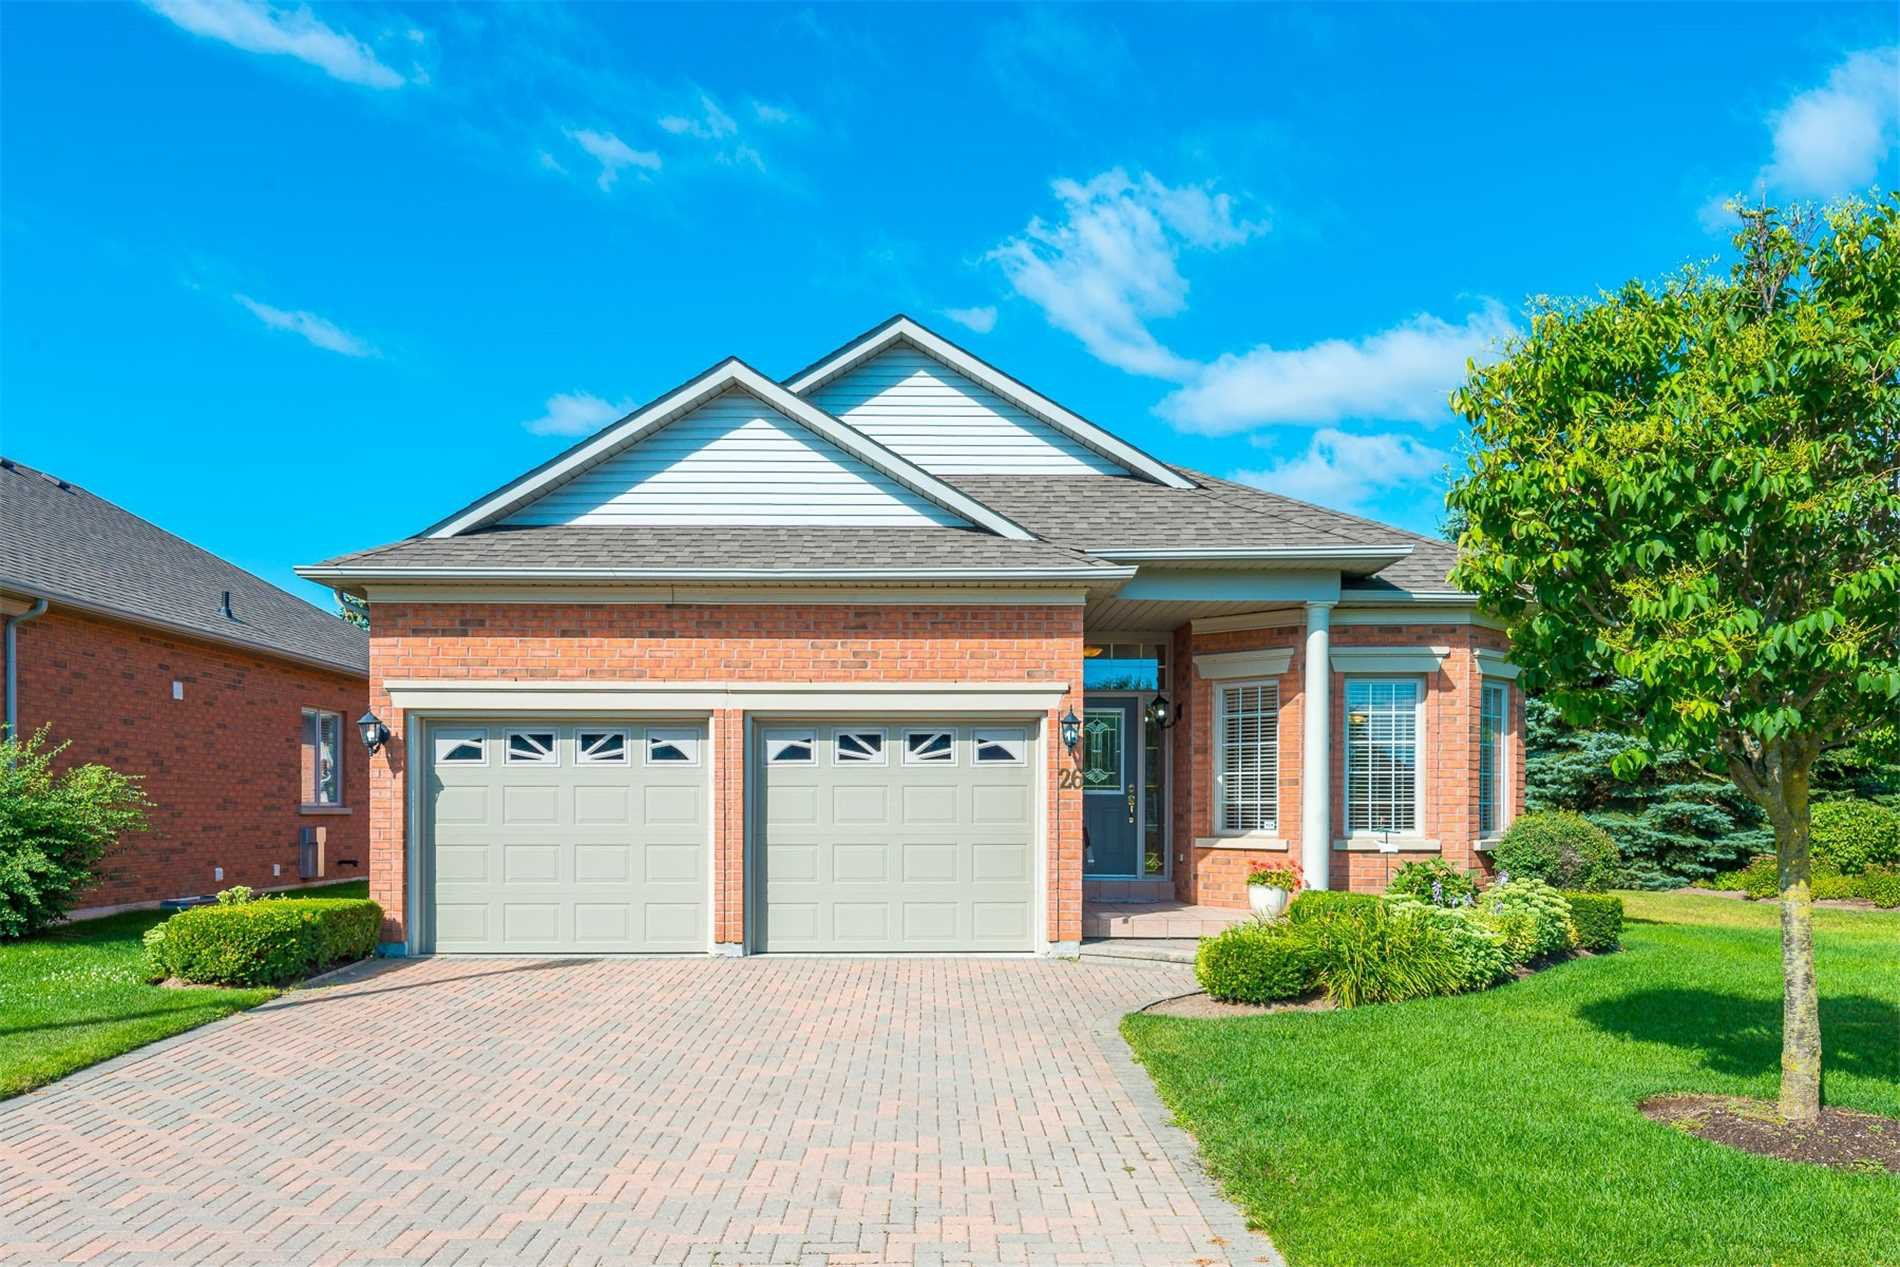 Main Photo: 26 Couples Gallery in Whitchurch-Stouffville: Freehold for sale : MLS®# N4548903